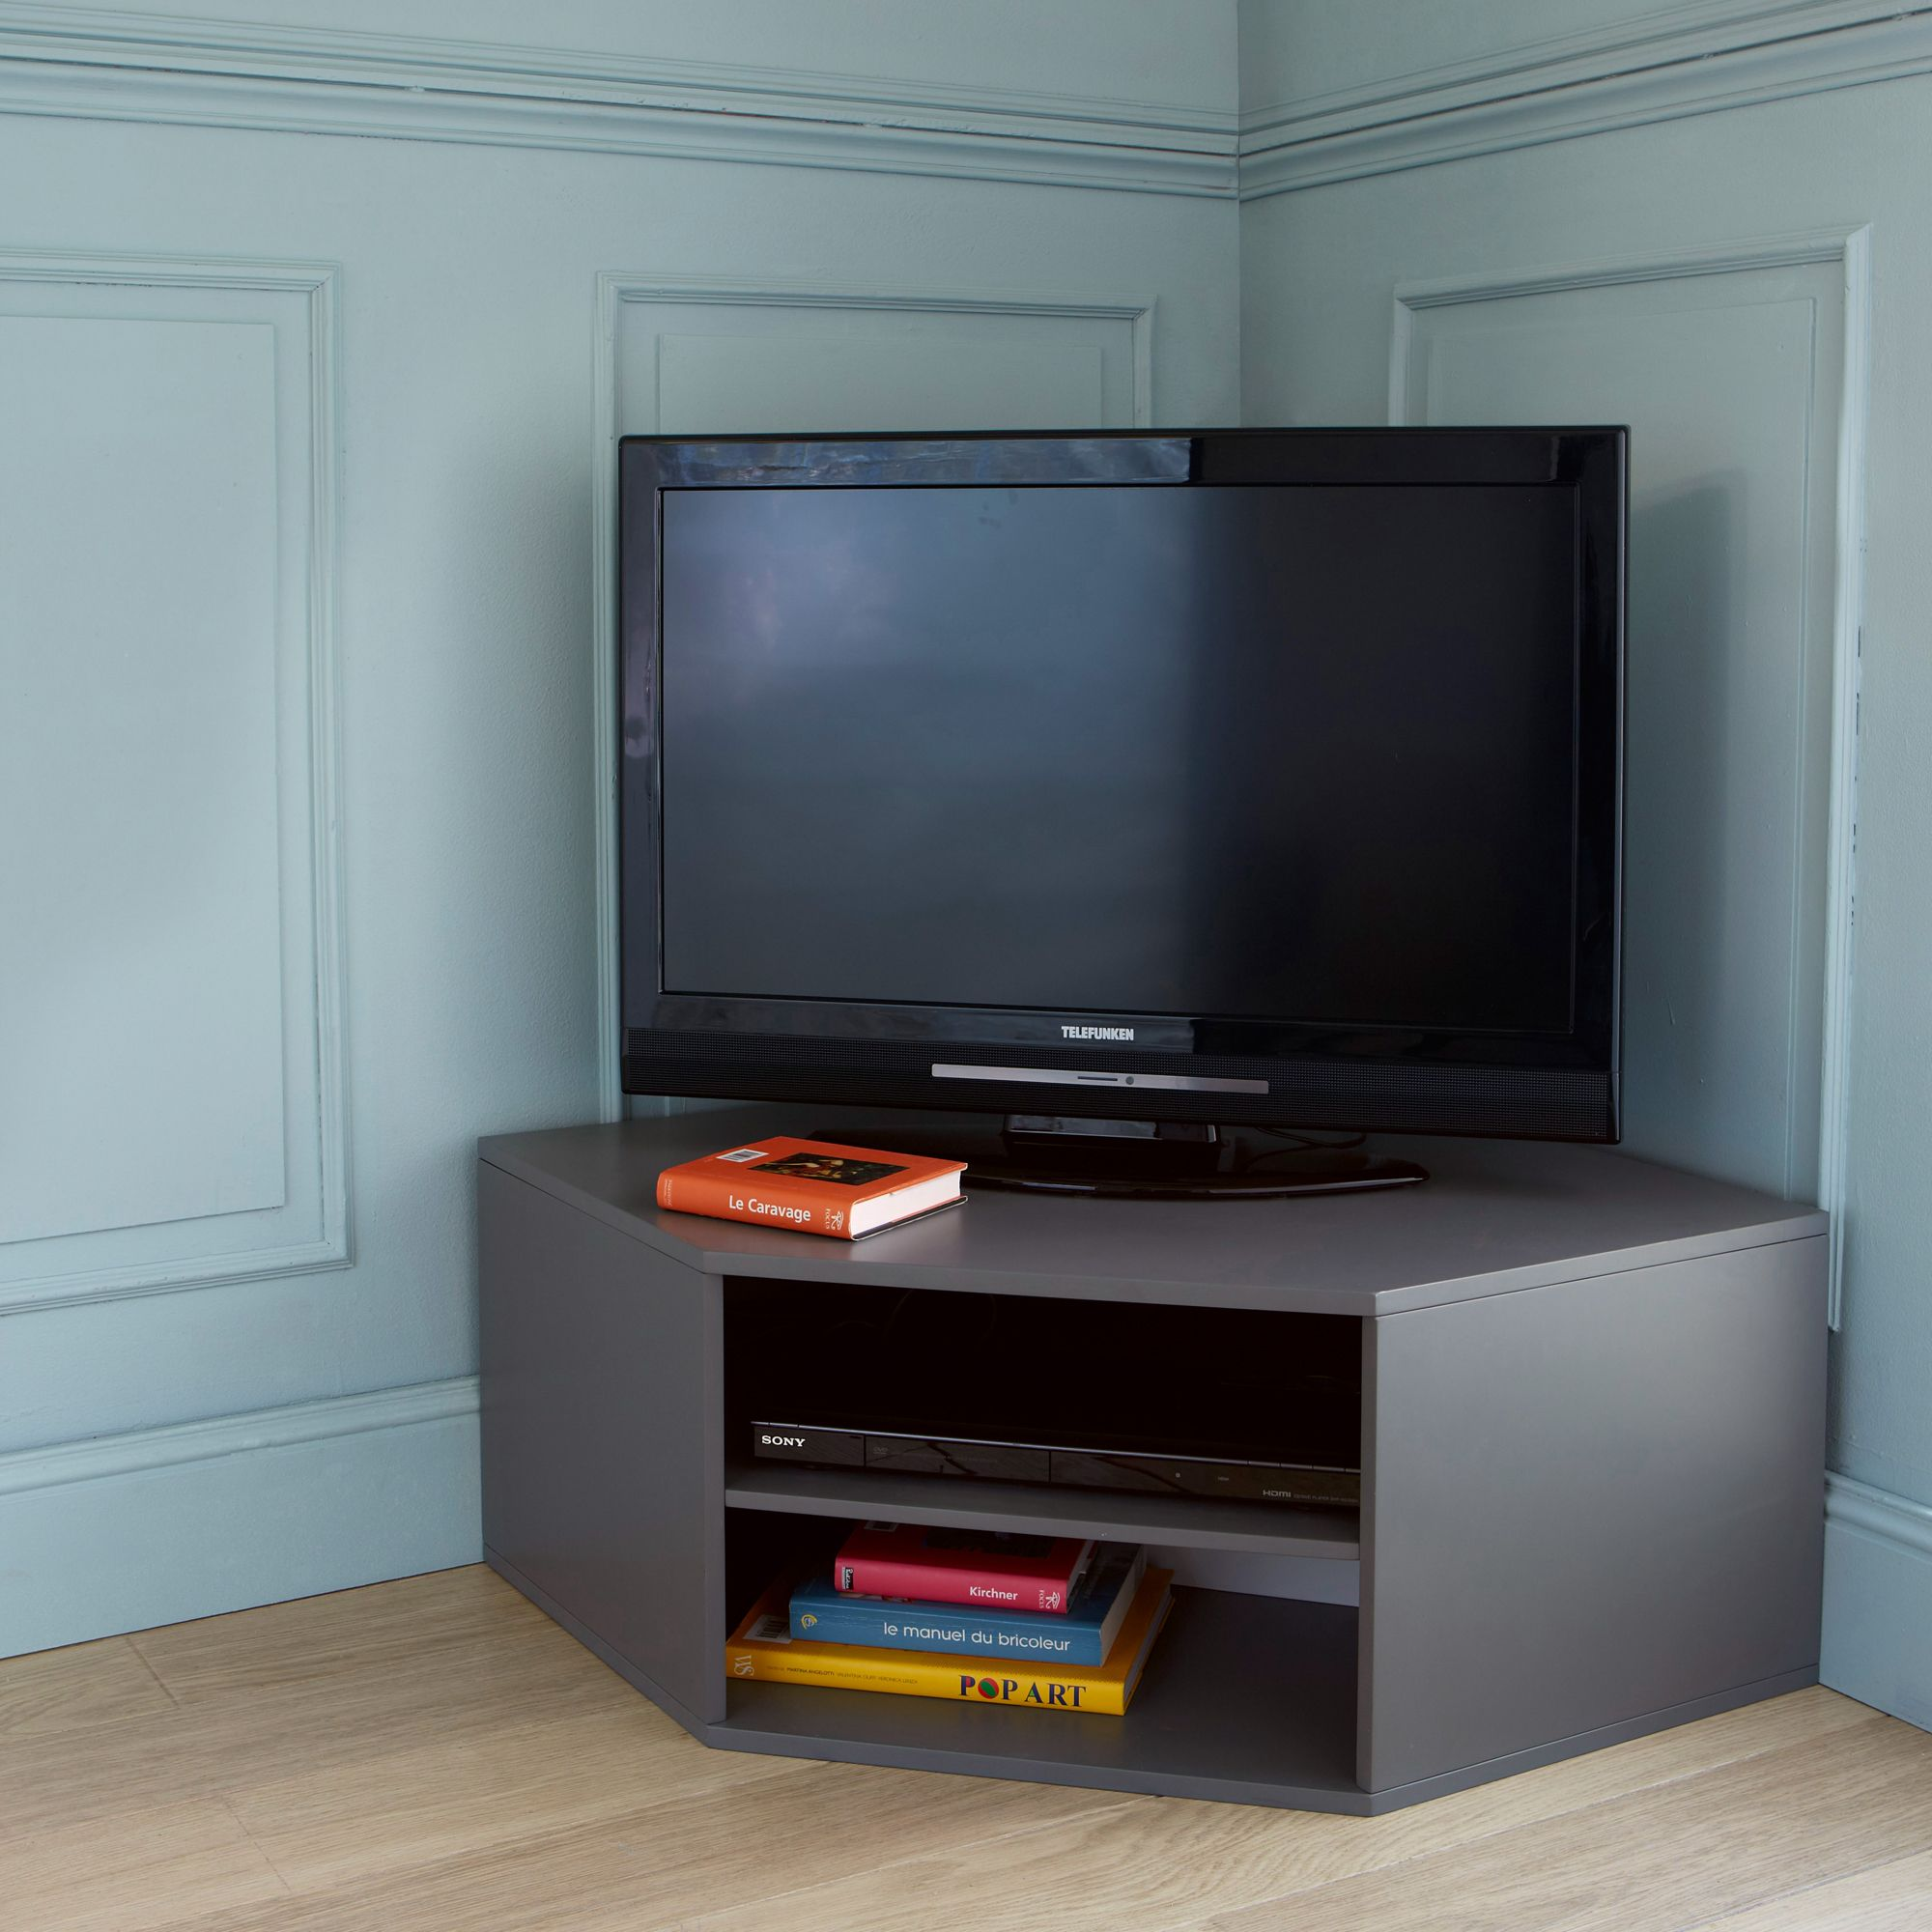 Meuble Tv D Angle Kolorcaz 3 Suisses Funitures Pinterest  # Meuble Tv A La Mode